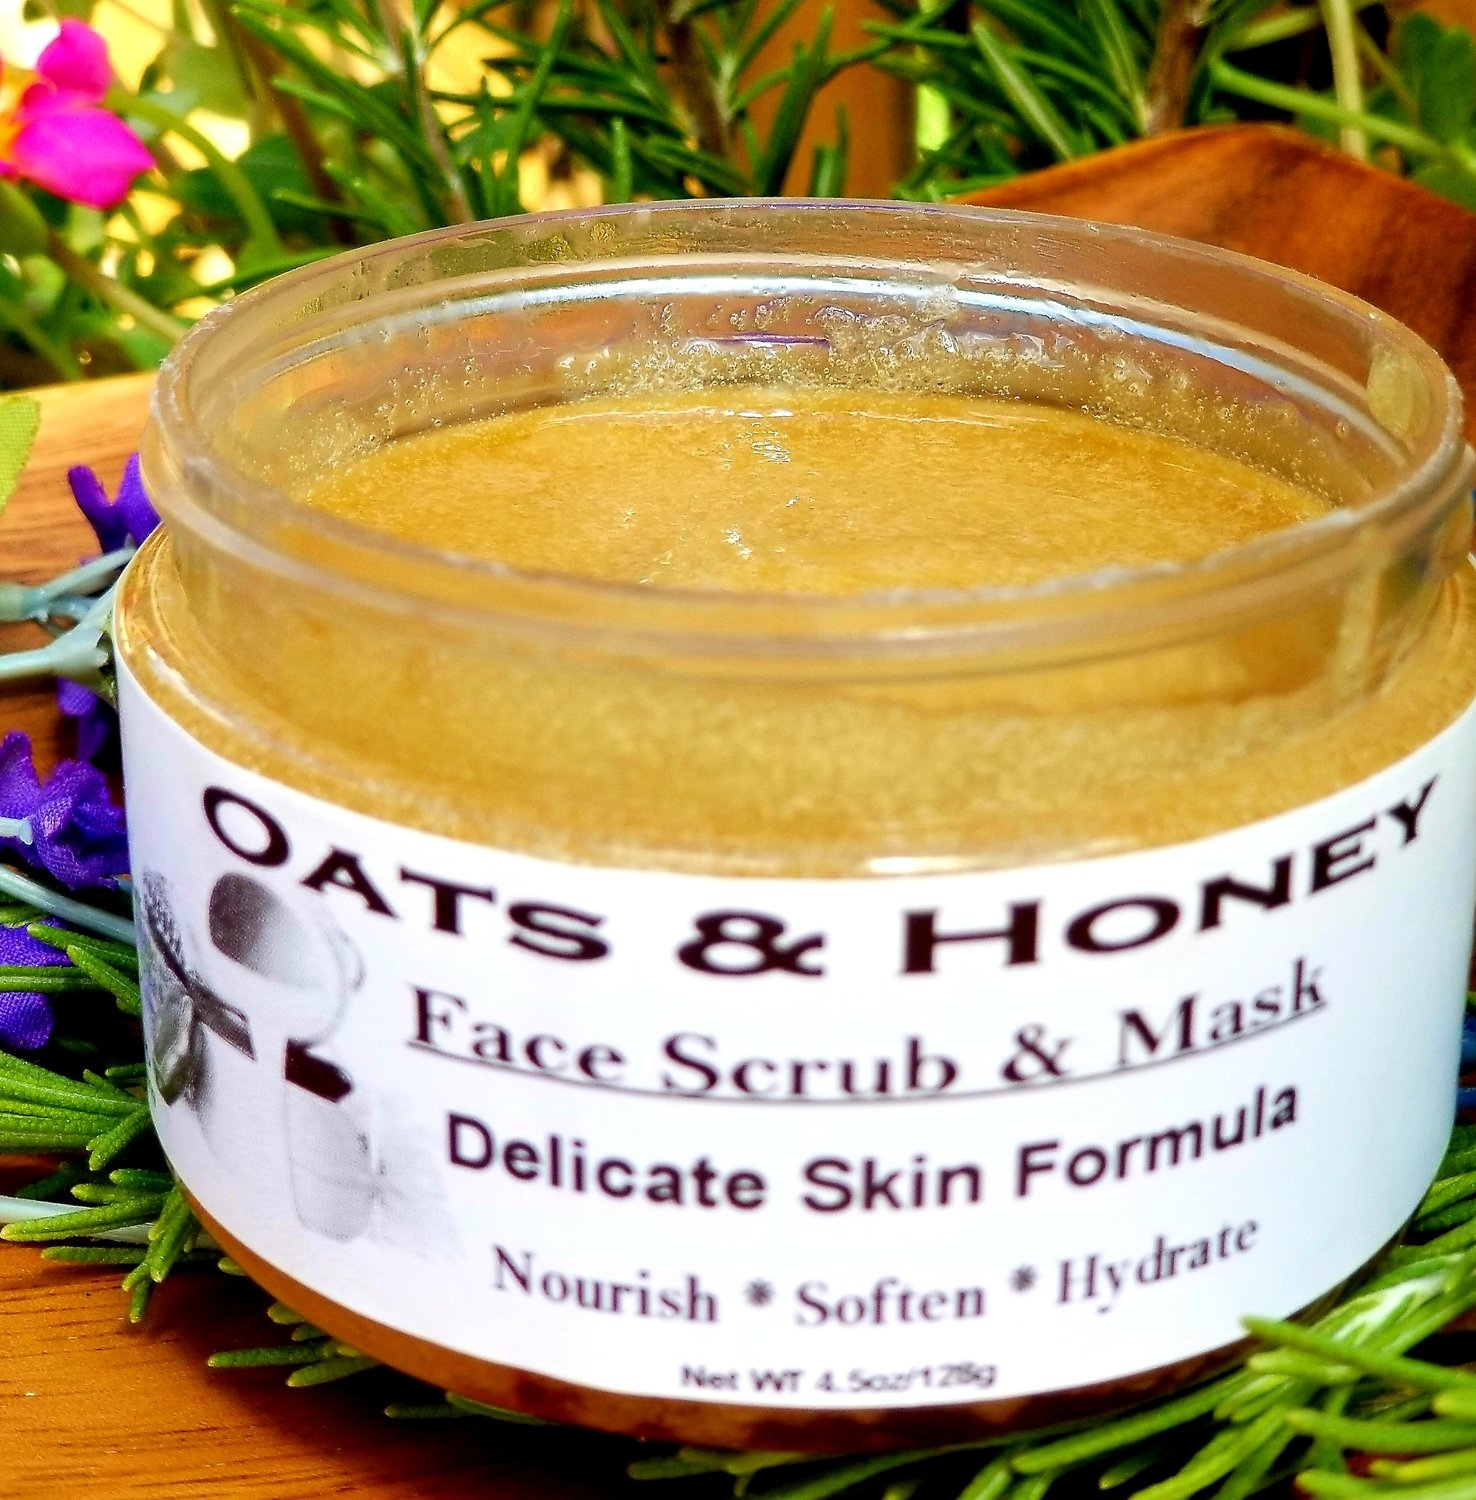 Facial Scrub & Cleanser, Oats & Honey